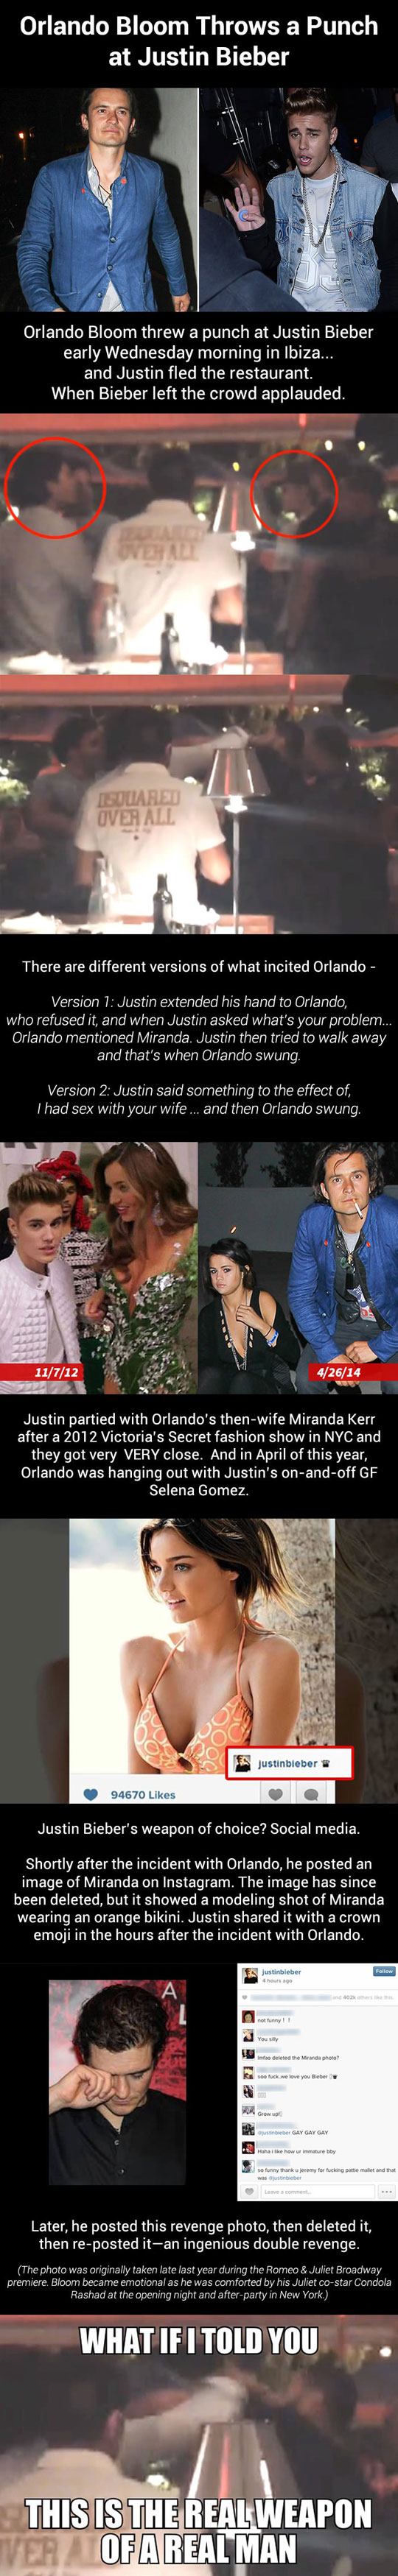 funny-Justin-Bieber-Orlando-Bloom-punch-theory